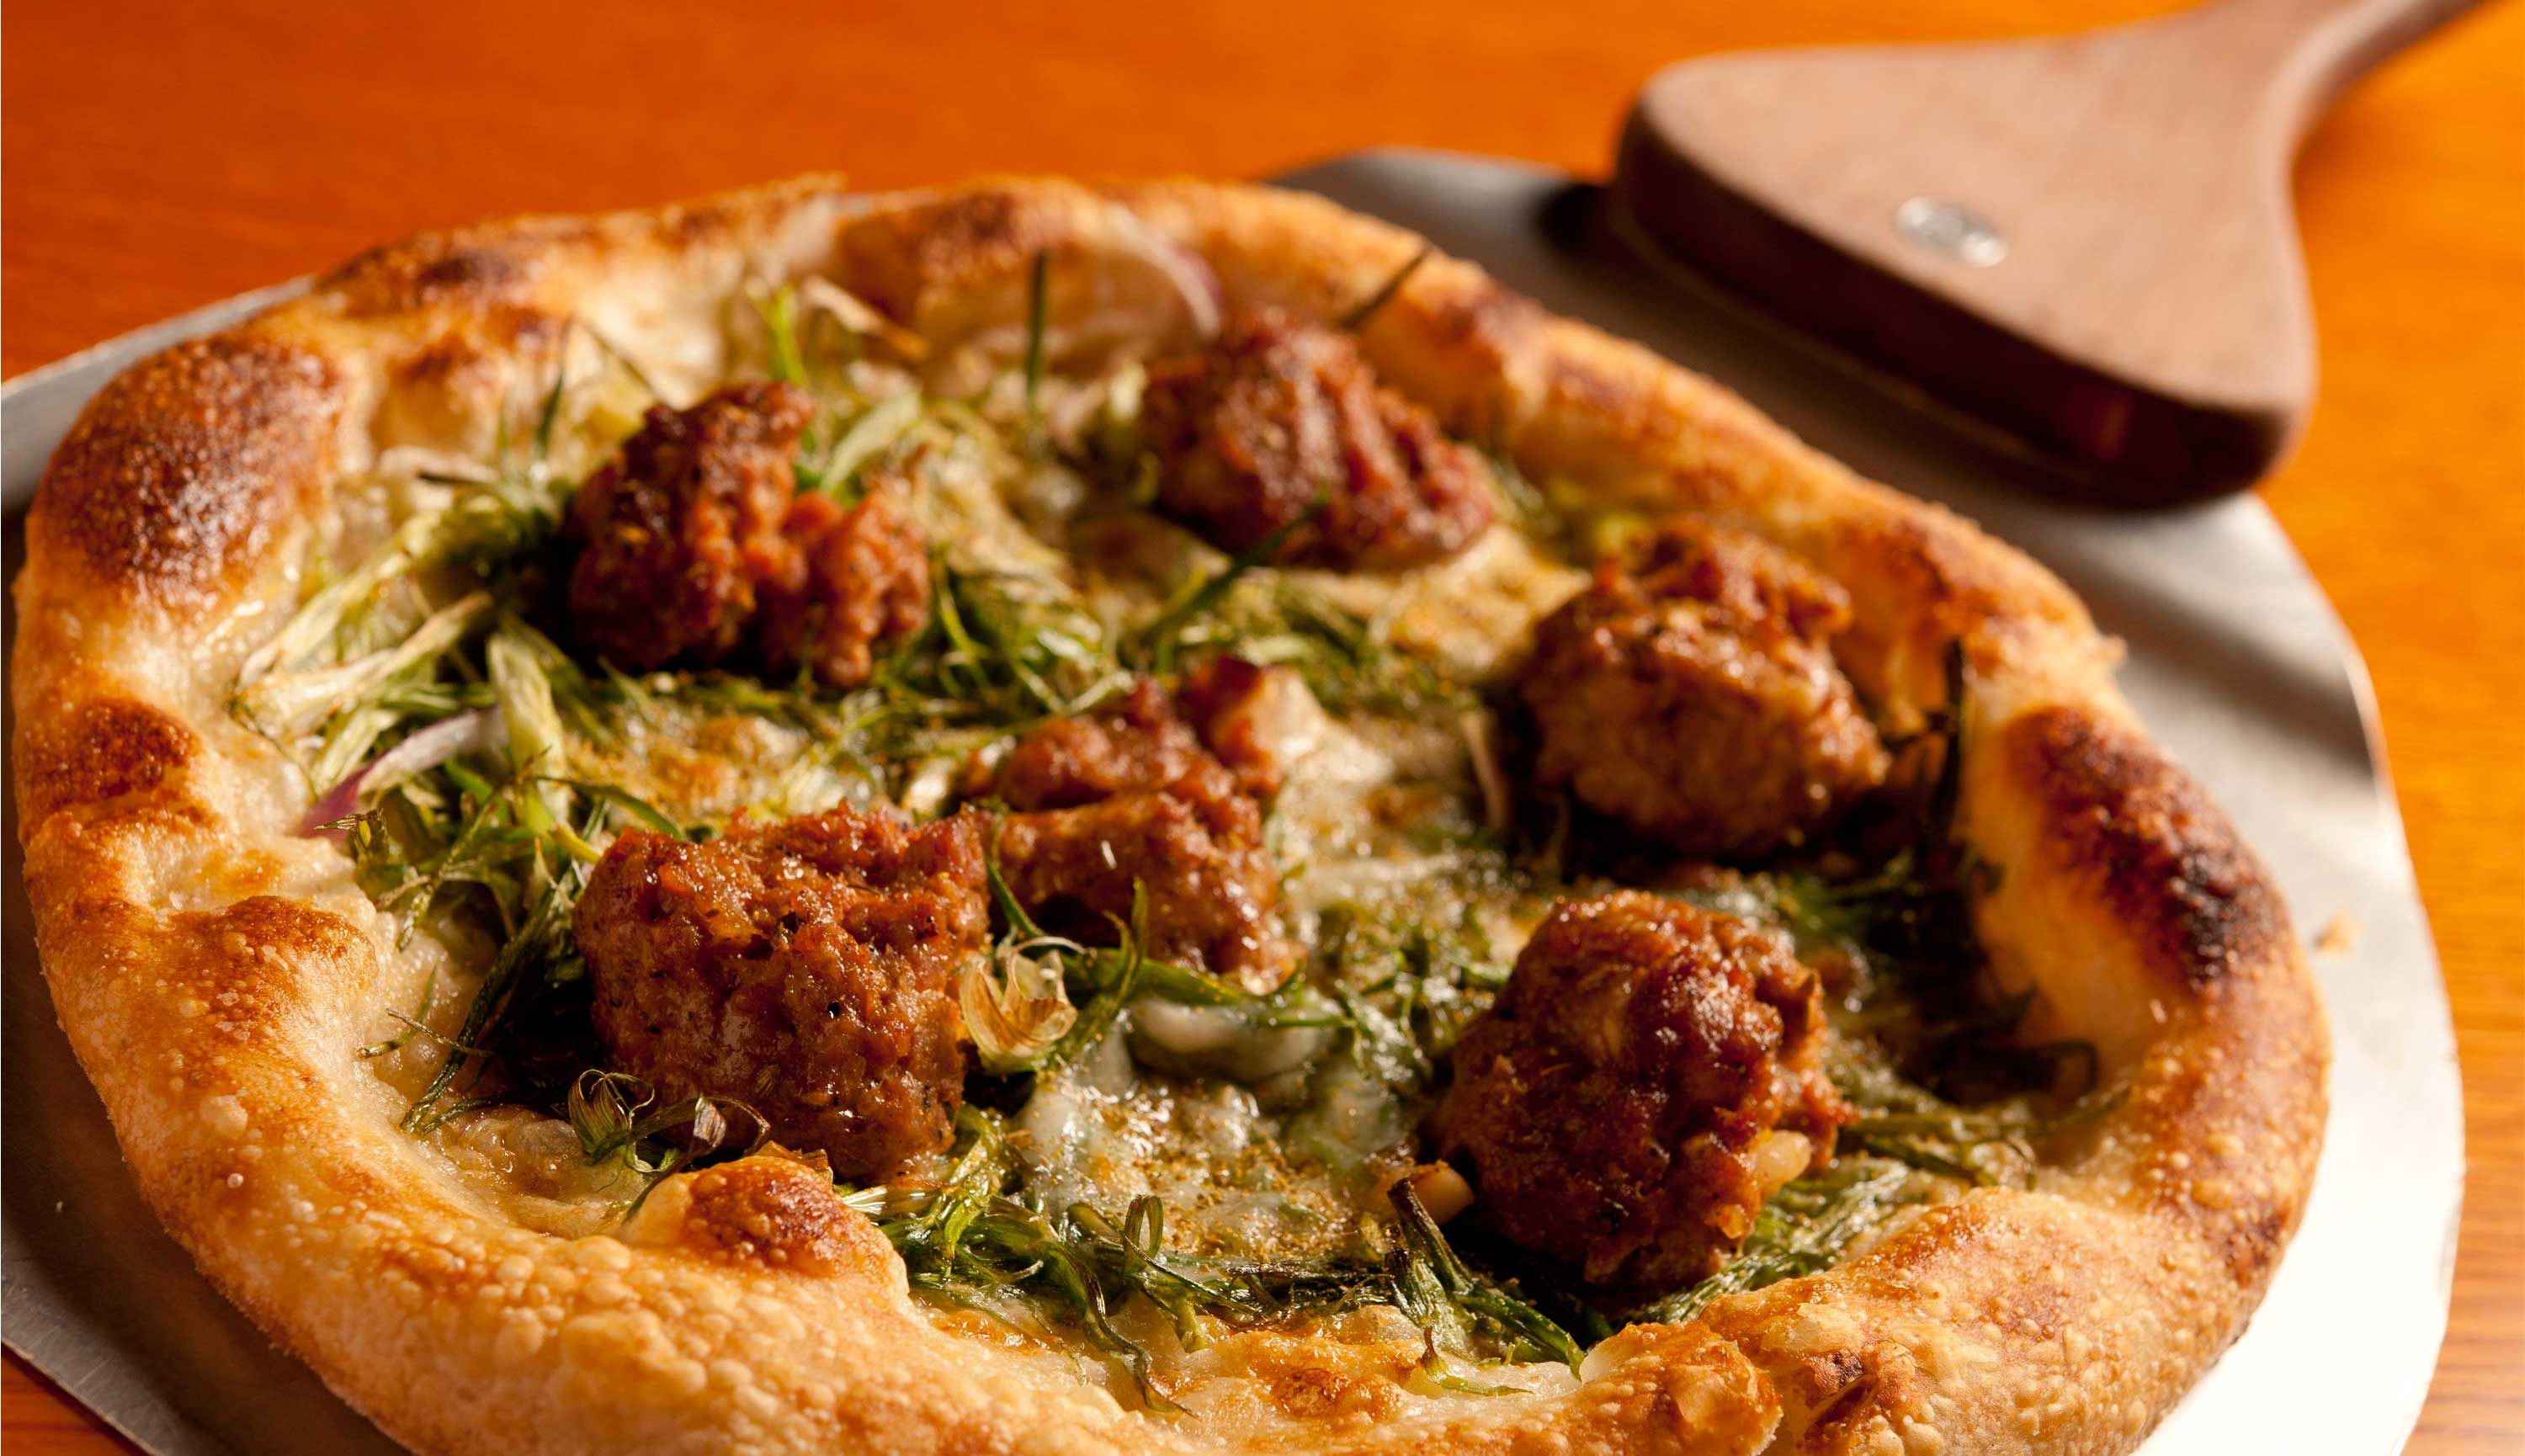 Fennel Sausage Pizza at Pizzeria Mozza, Marina Bay Sands